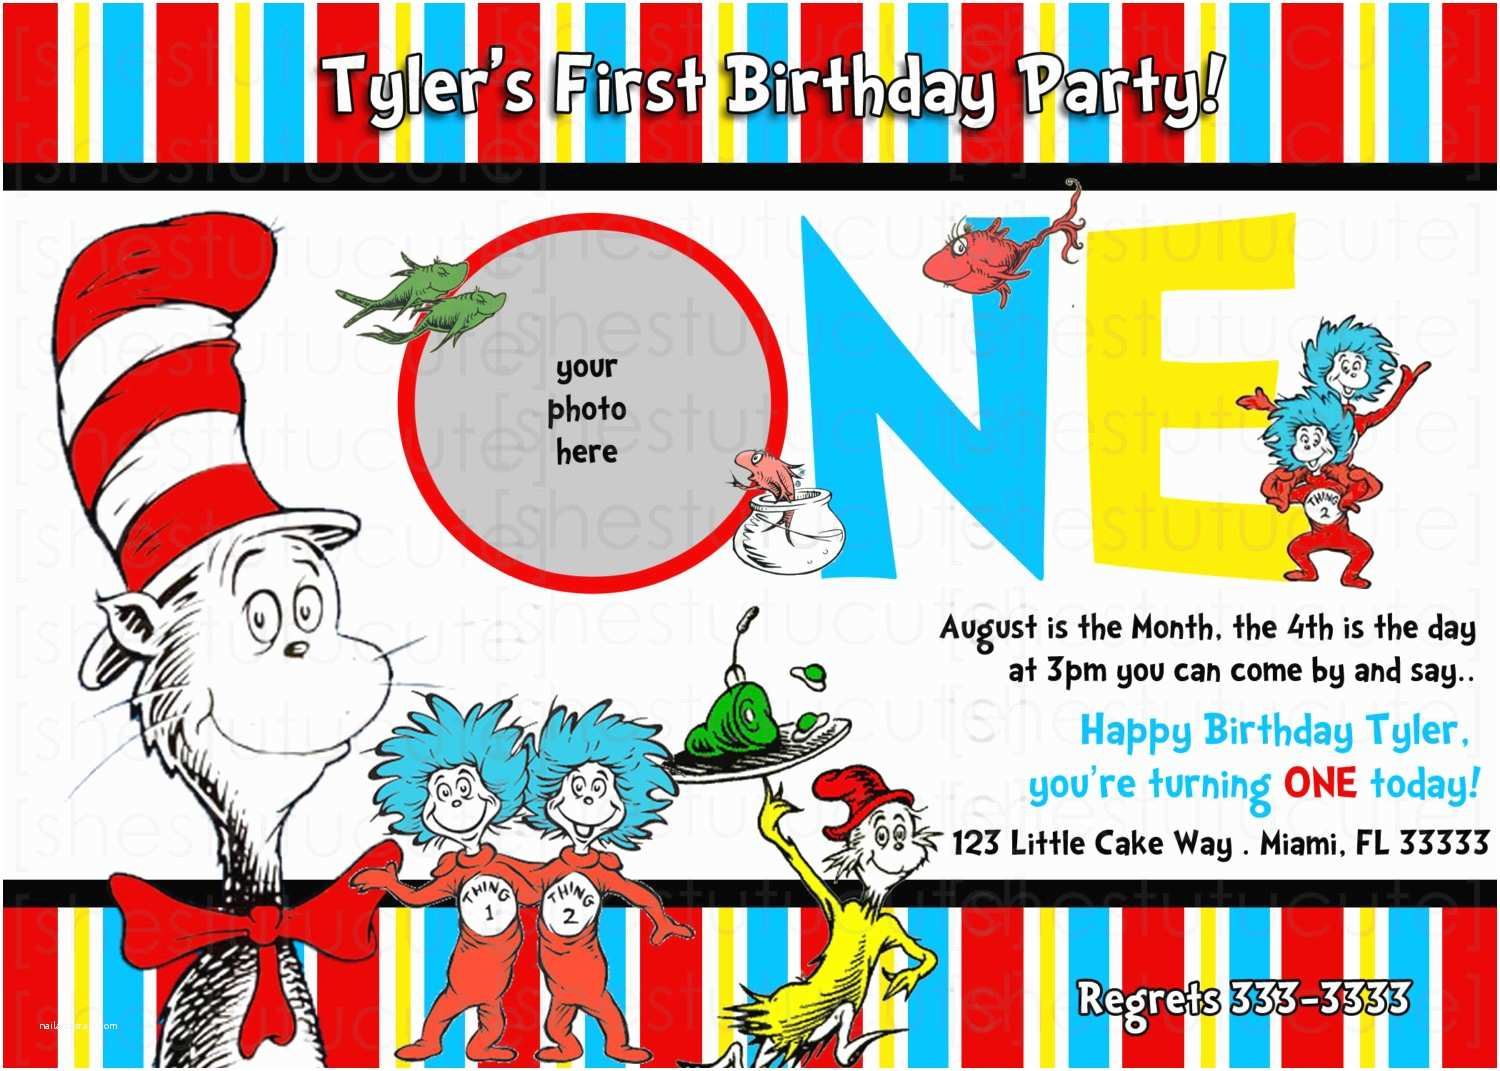 Dr Seuss Birthday Invitations How to Make Dr Seuss Birthday Party Invitations Ideas